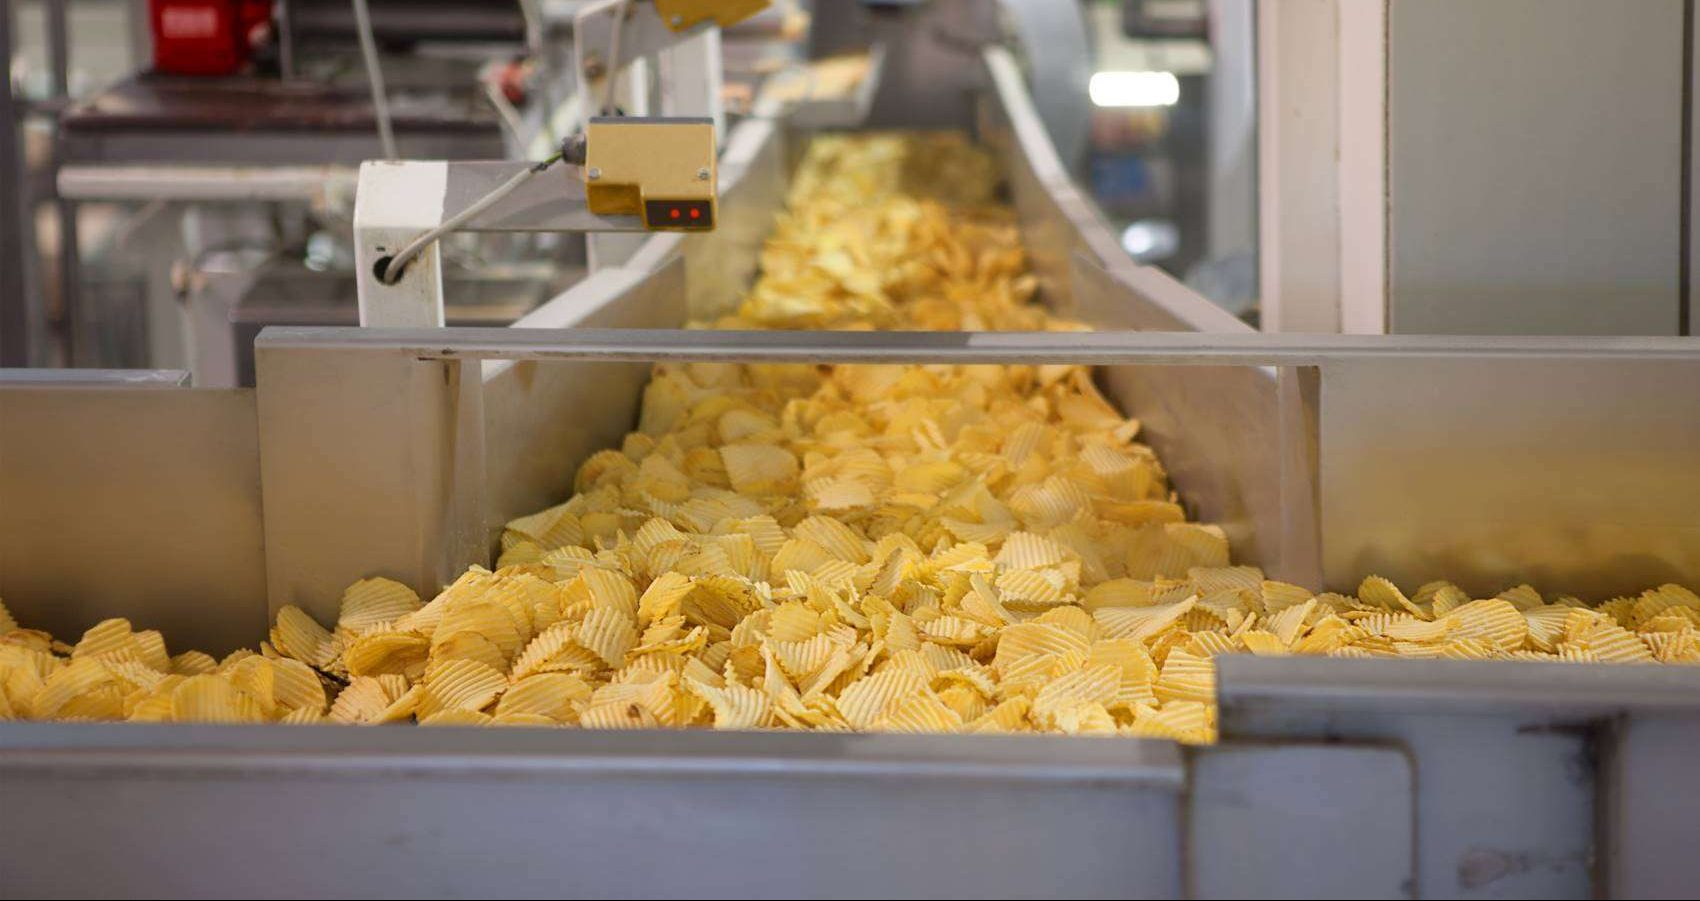 Snack Manufacturing and the Importance of Production Scheduling